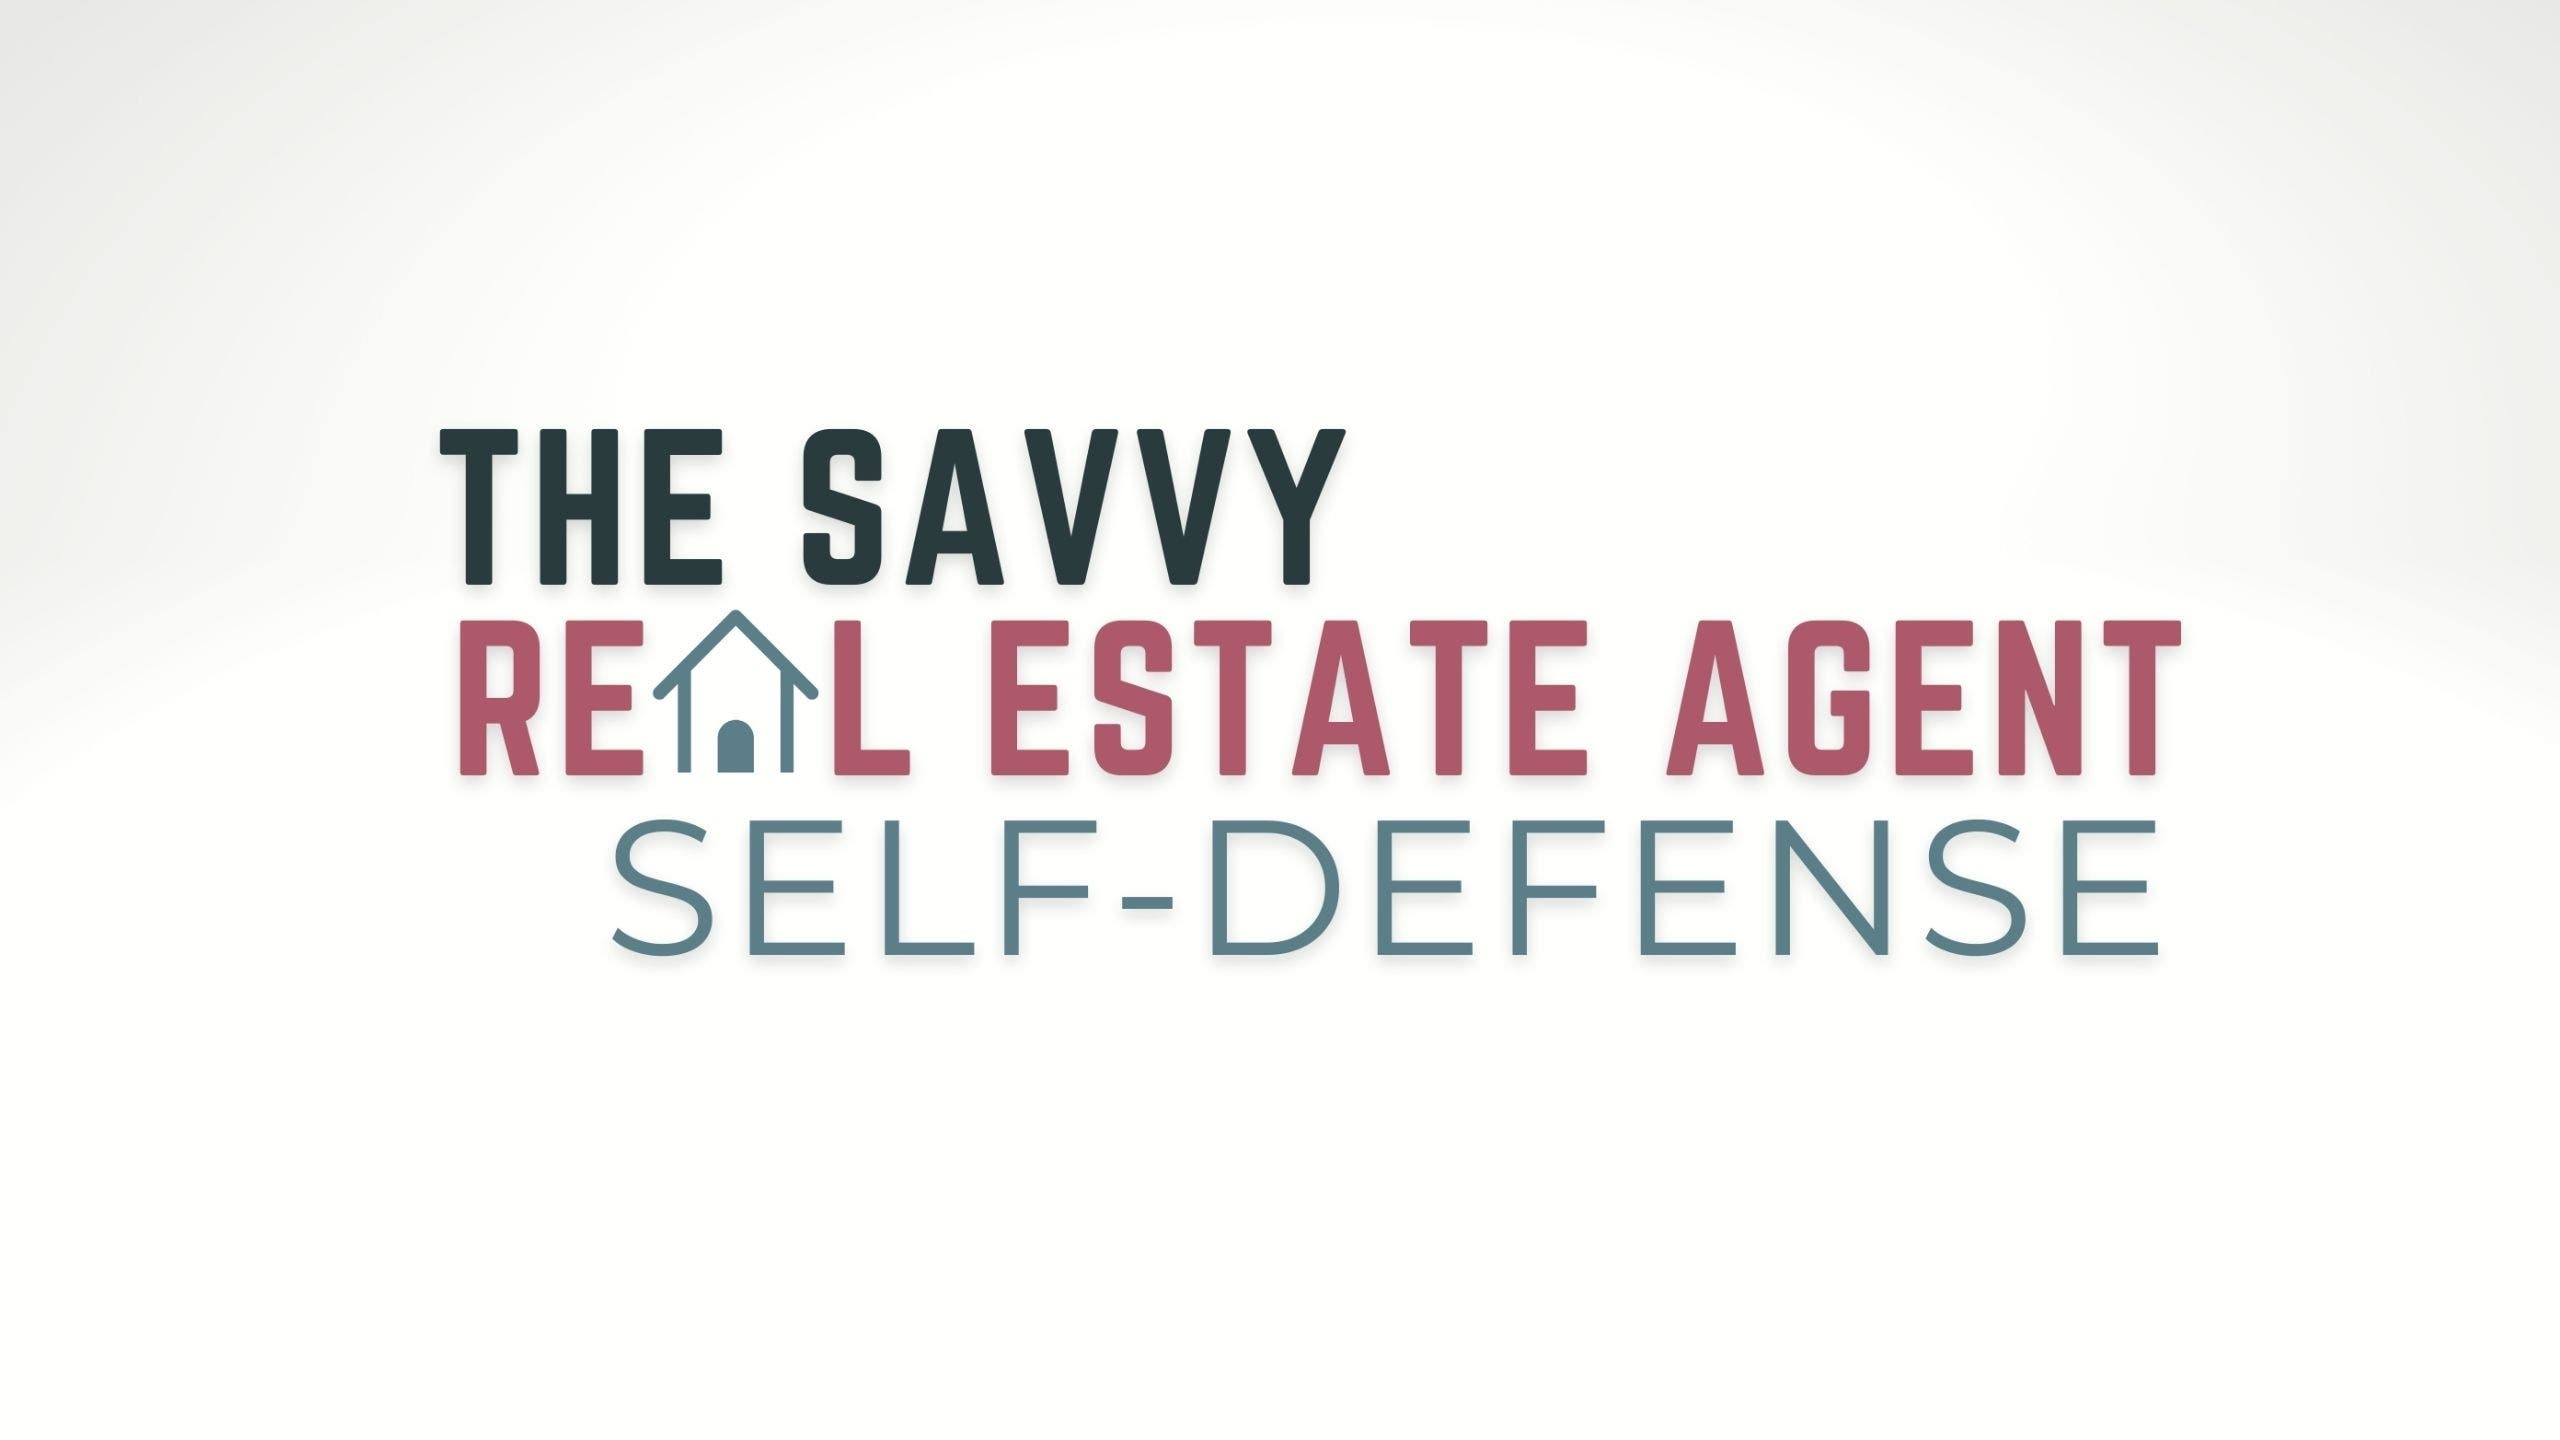 The Savvy Real Estate Agent